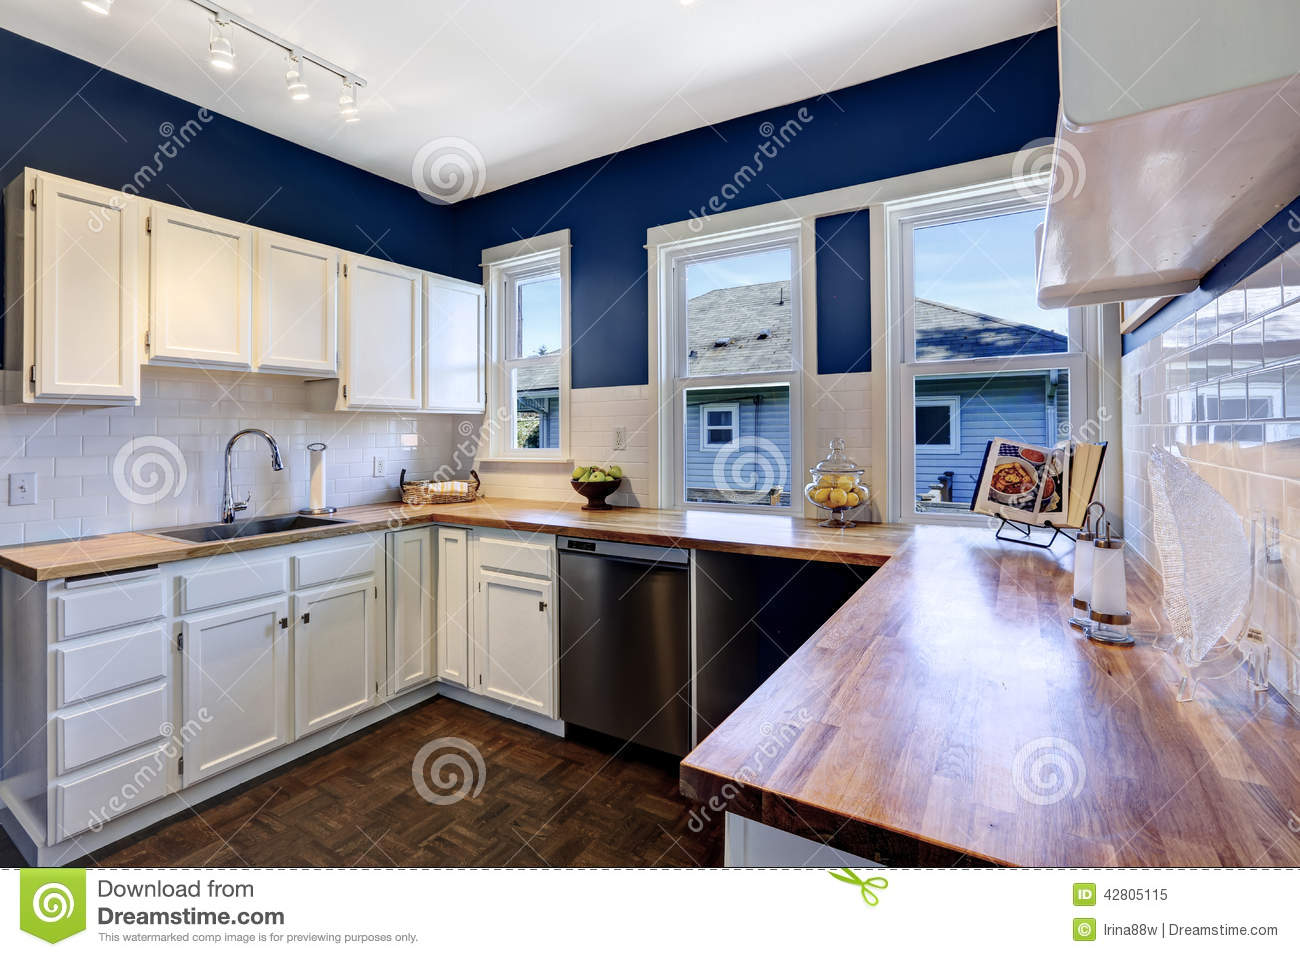 Kitchen interior in bright navy and white colors stock for Kitchen walls with white cabinets